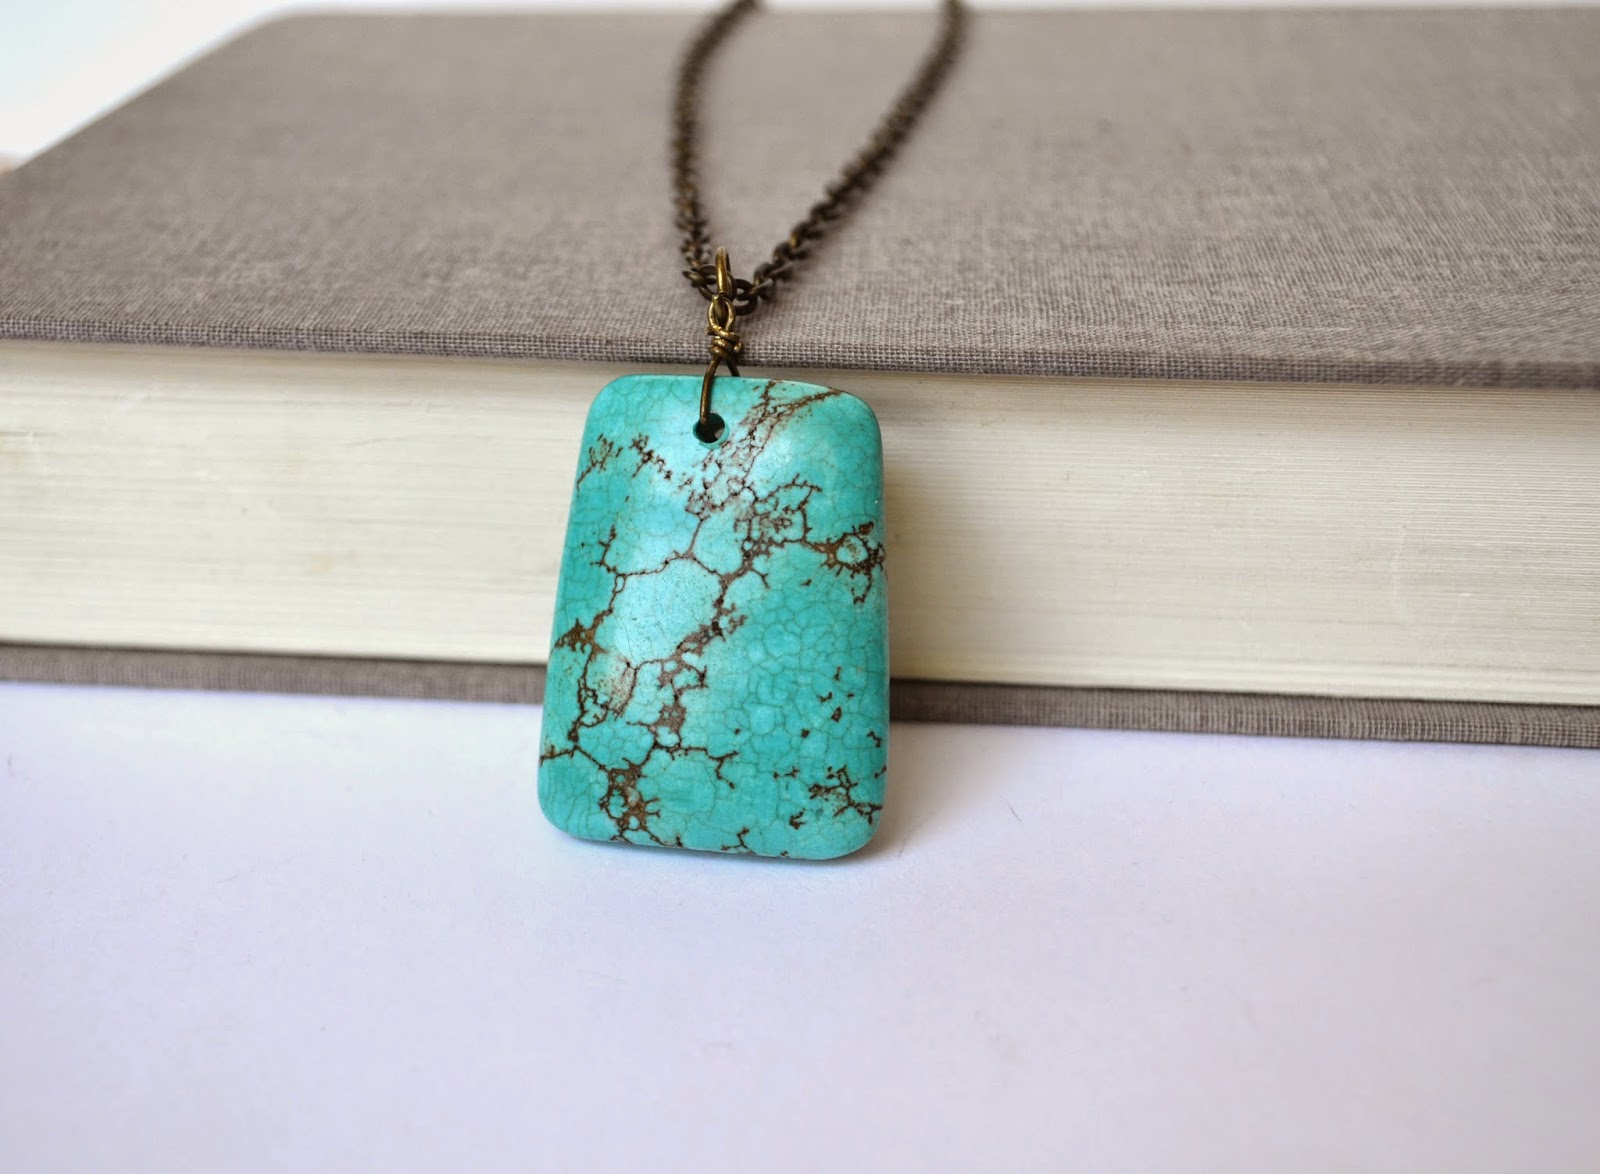 https://www.etsy.com/listing/99334719/layering-necklace-turquoise-long?ref=listing-shop-header-1